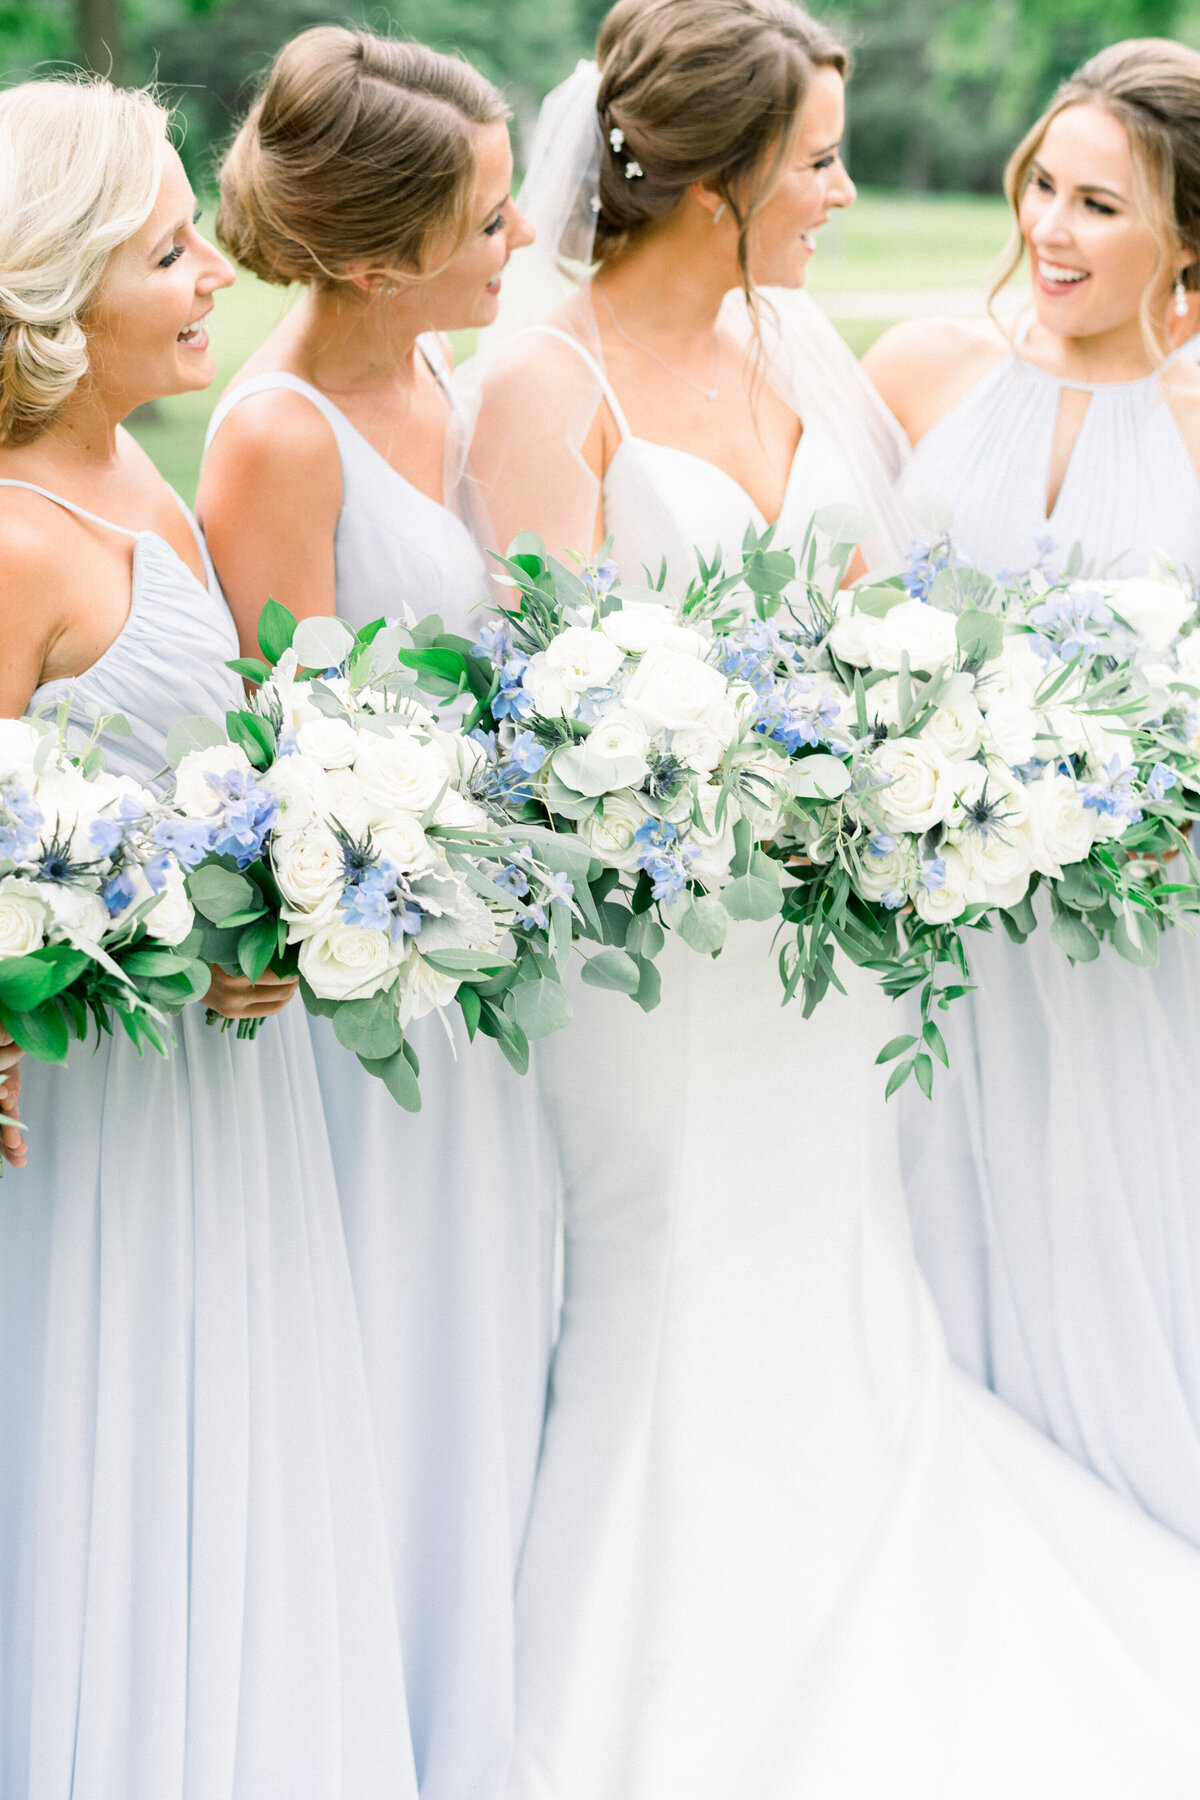 Minnesota Bride, Minnesota wedding photographer, Minneapolis wedding photographer, Wedding Dress, trish Allison photography, trish allison photography weddings, Light and airy photographer, MN Photographer